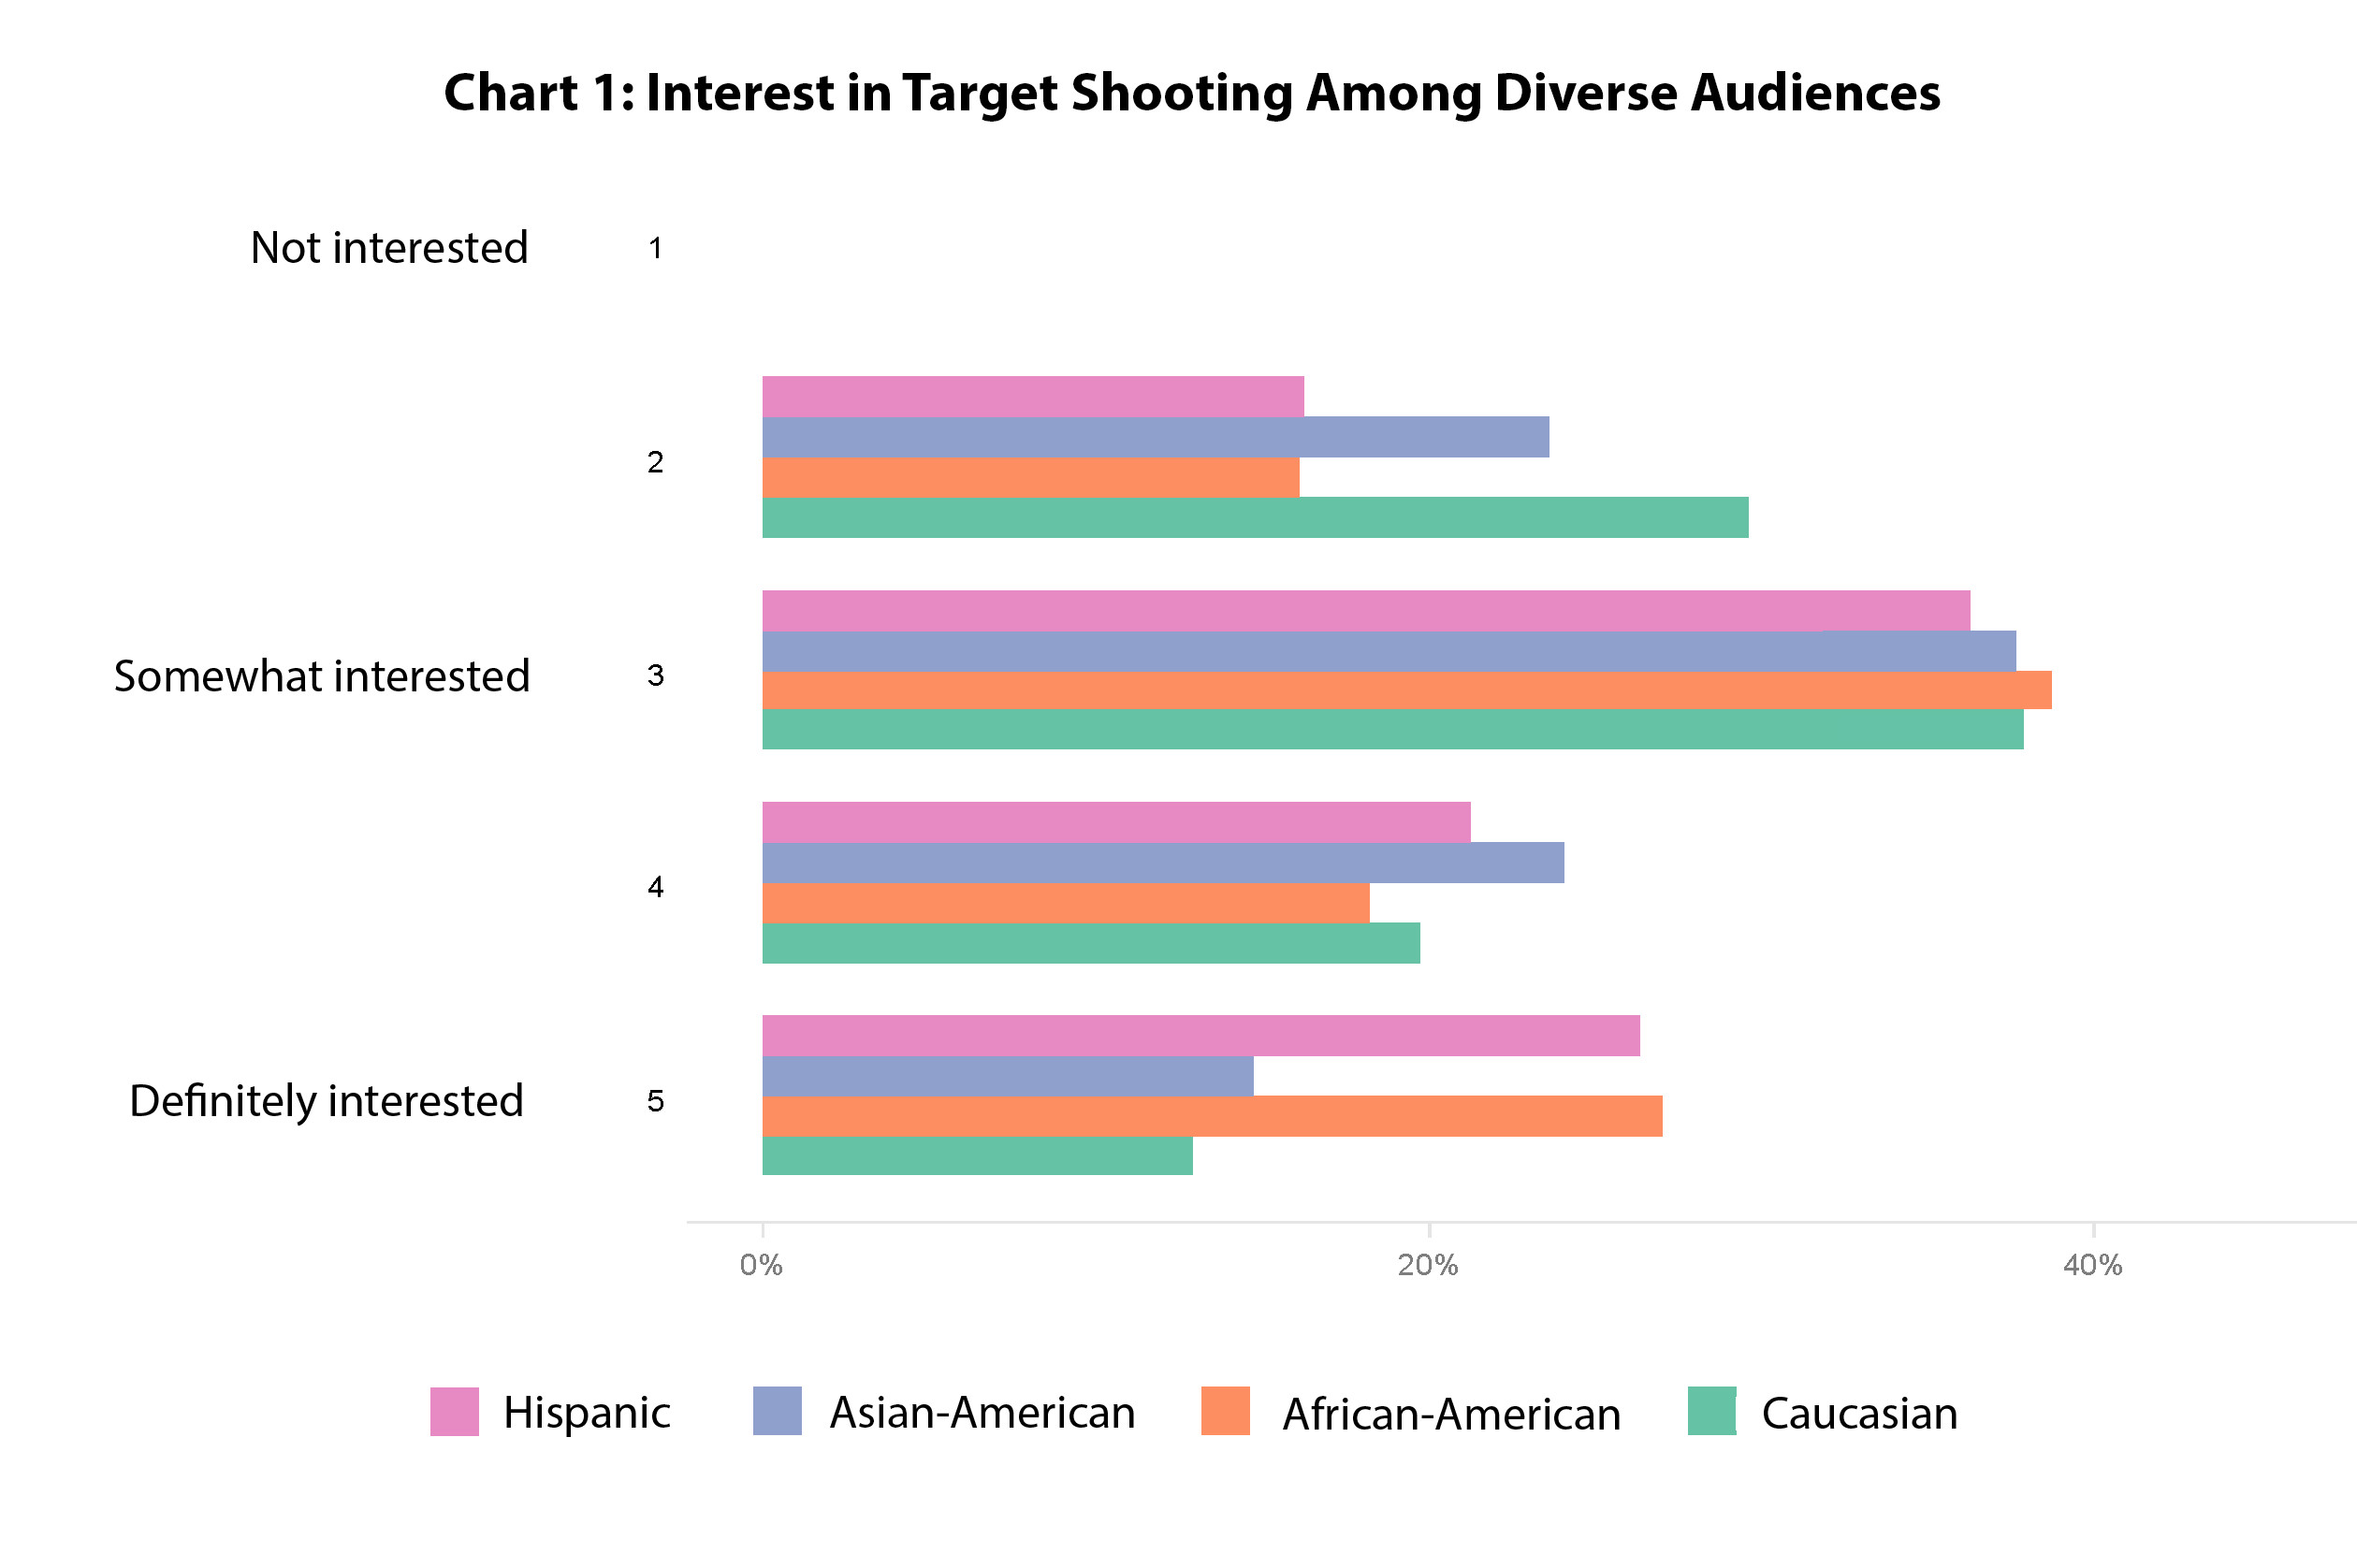 multi cultural interests in target shooting nssf blog hispanics african americans and asian americans as well as younger audiences are more likely to be reached